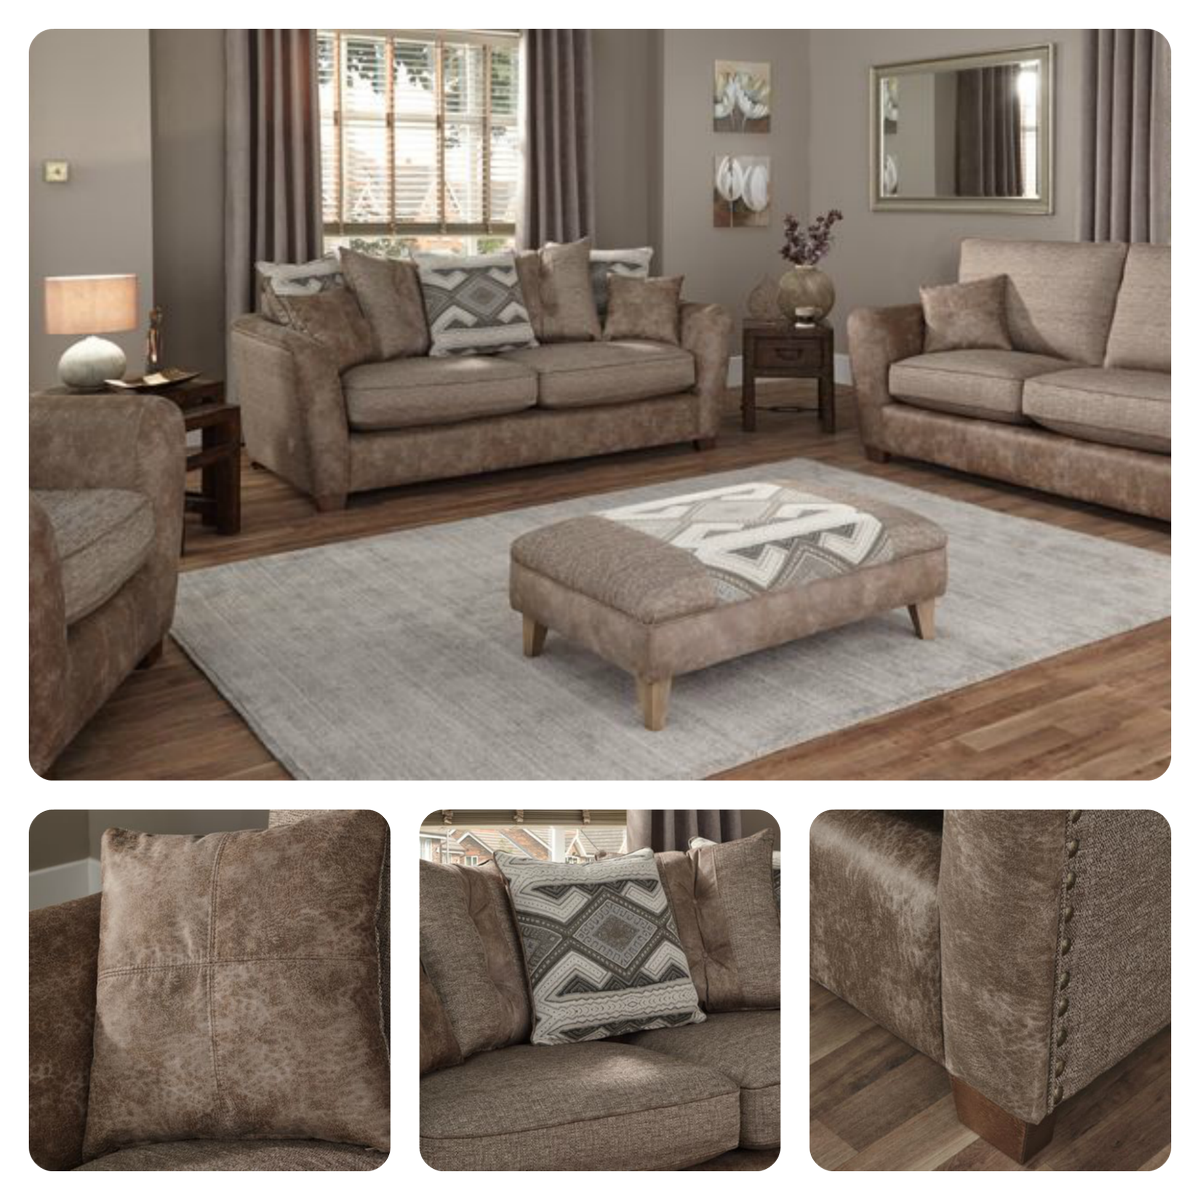 Scs Sofas On Twitter Make A Bold Statement In Your Home This Winter With The Modern Aspire Sofa Collection Https T Co 6qy8dog6x8